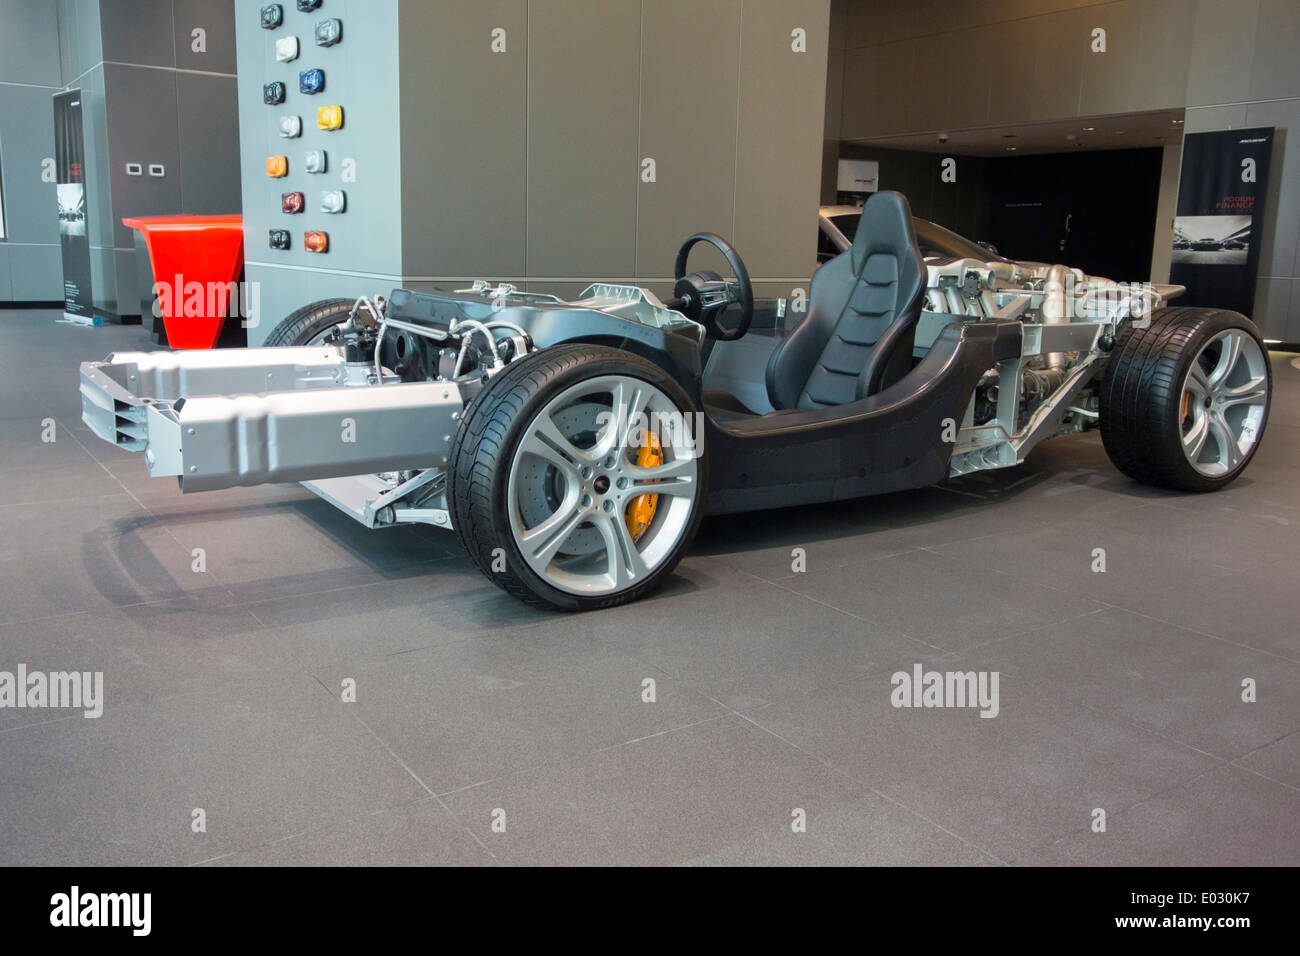 McLaren MP4 12C Sports Car Rolling Chassis Stock Photo: 68907867 - Alamy